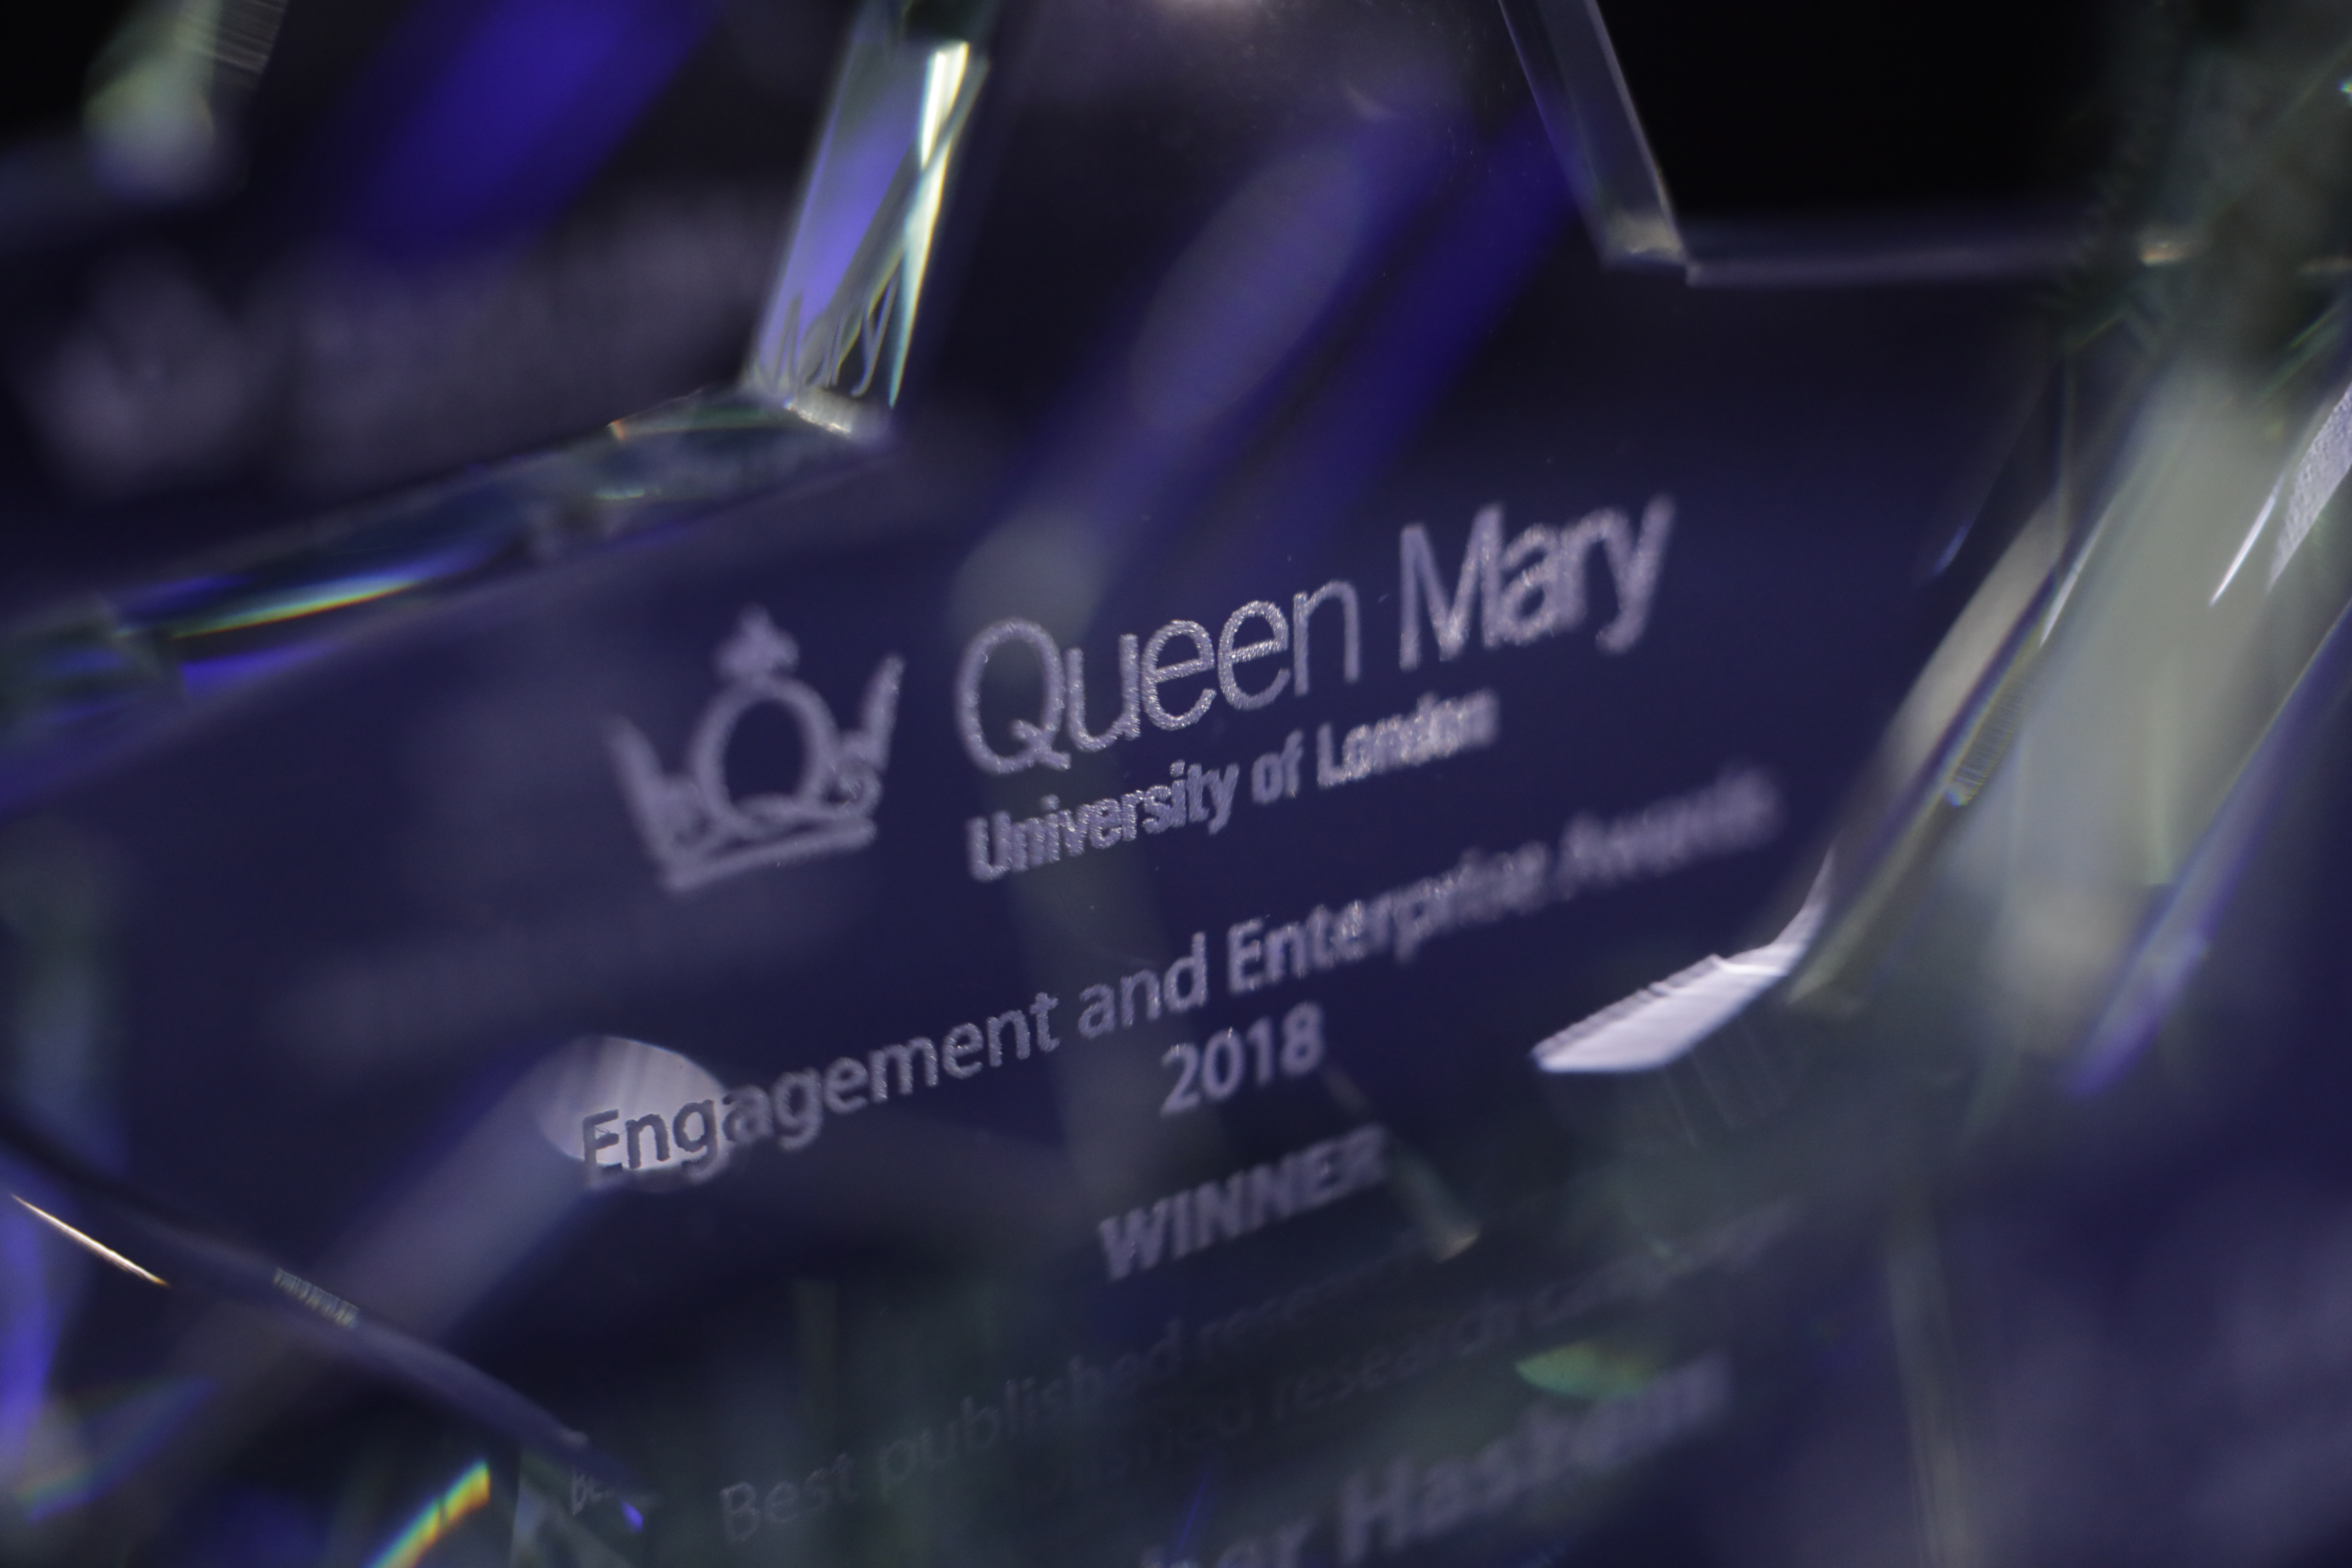 A glass trophy from the Engagement and Enterprise Awards 2018